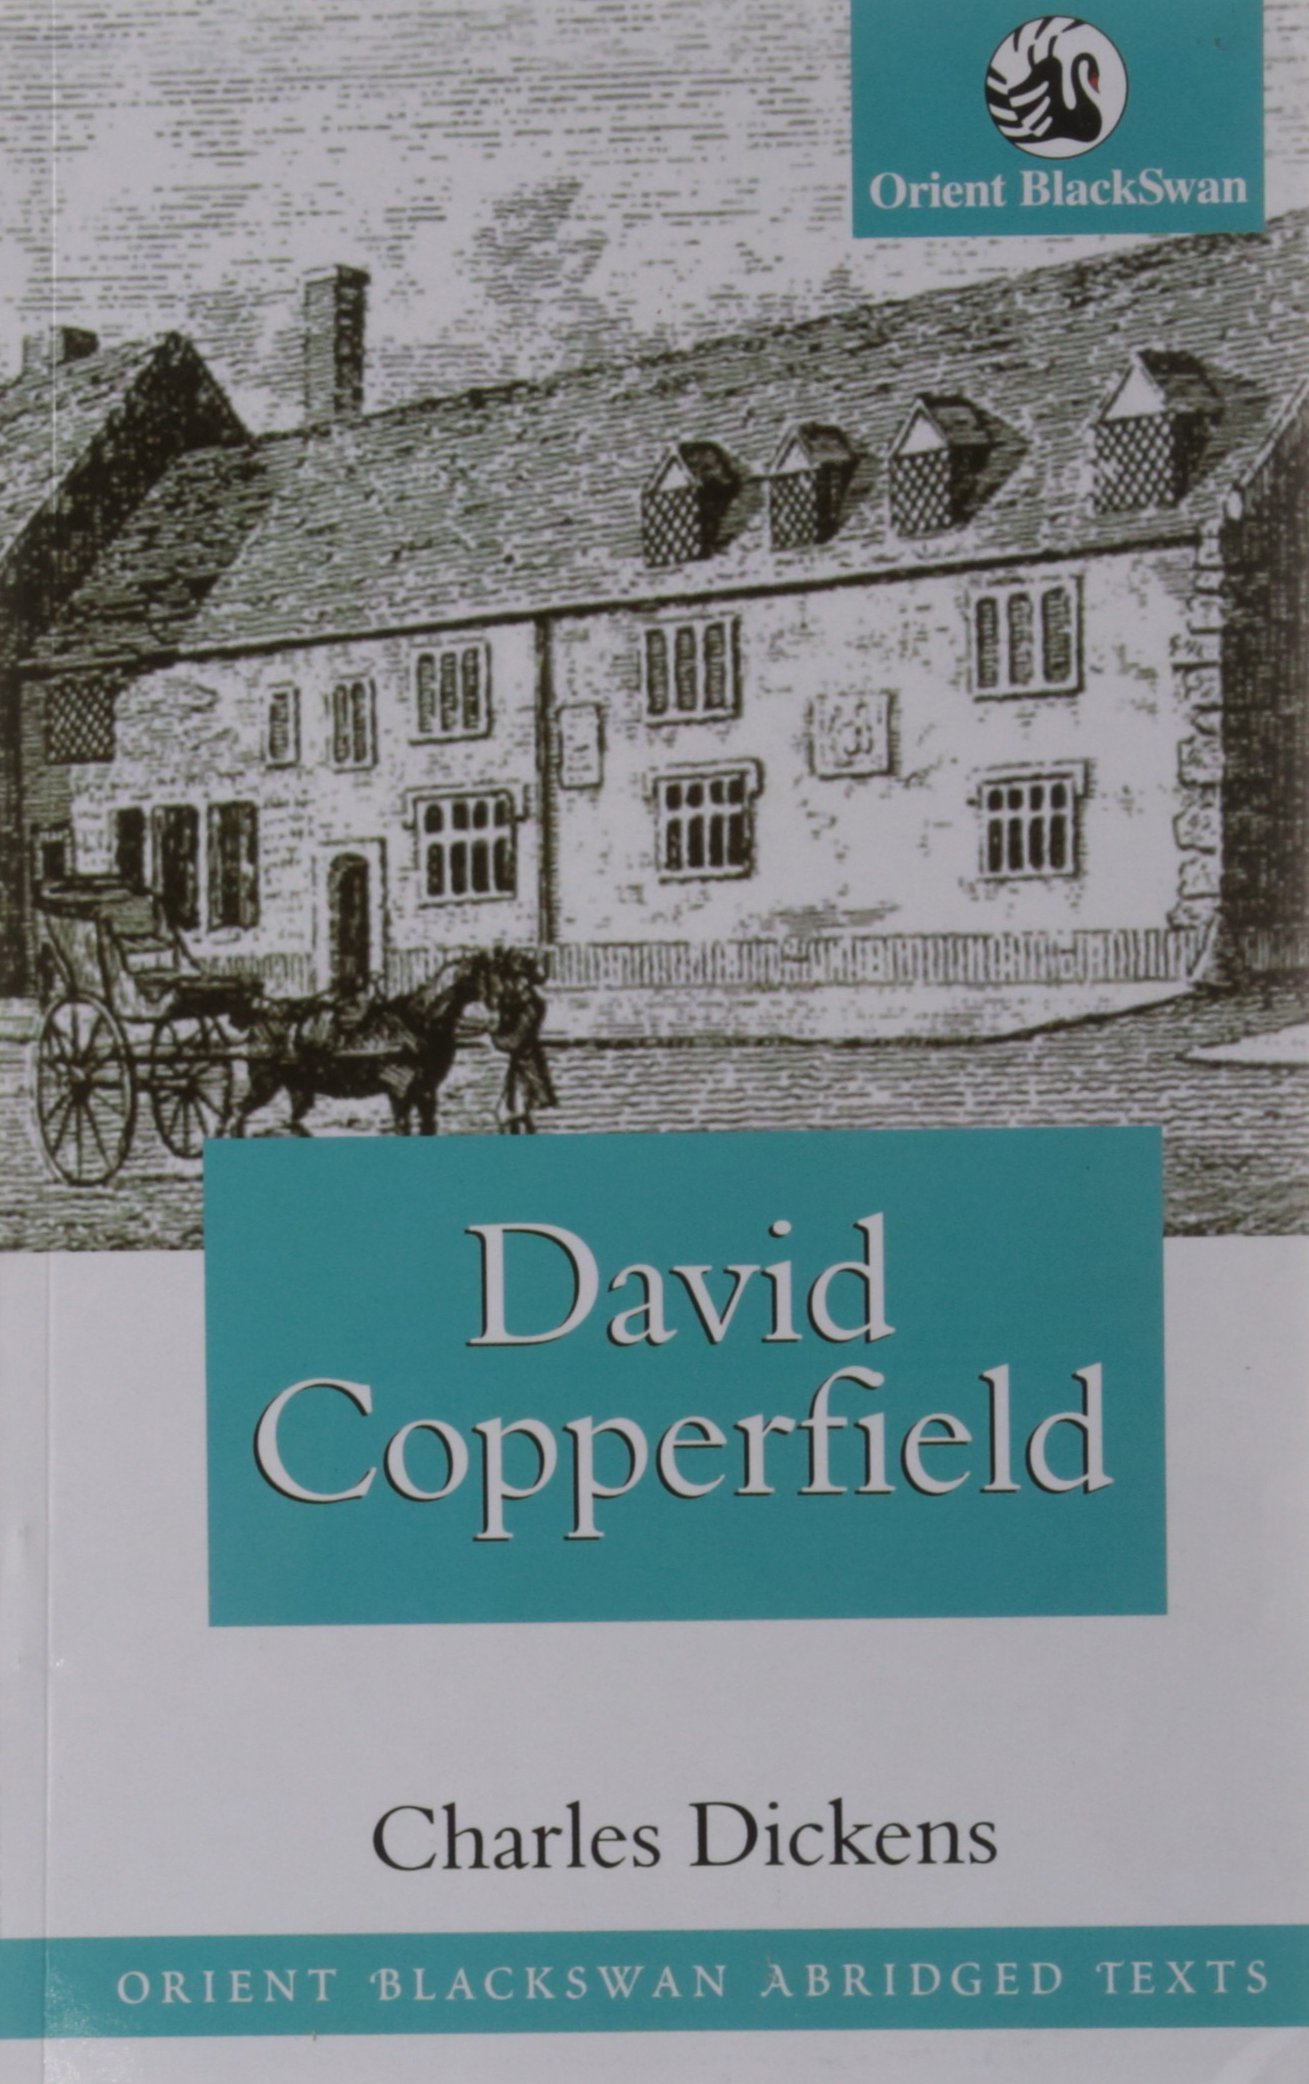 buy david copperfield obat book online at low prices in buy david copperfield obat book online at low prices in david copperfield obat reviews ratings in